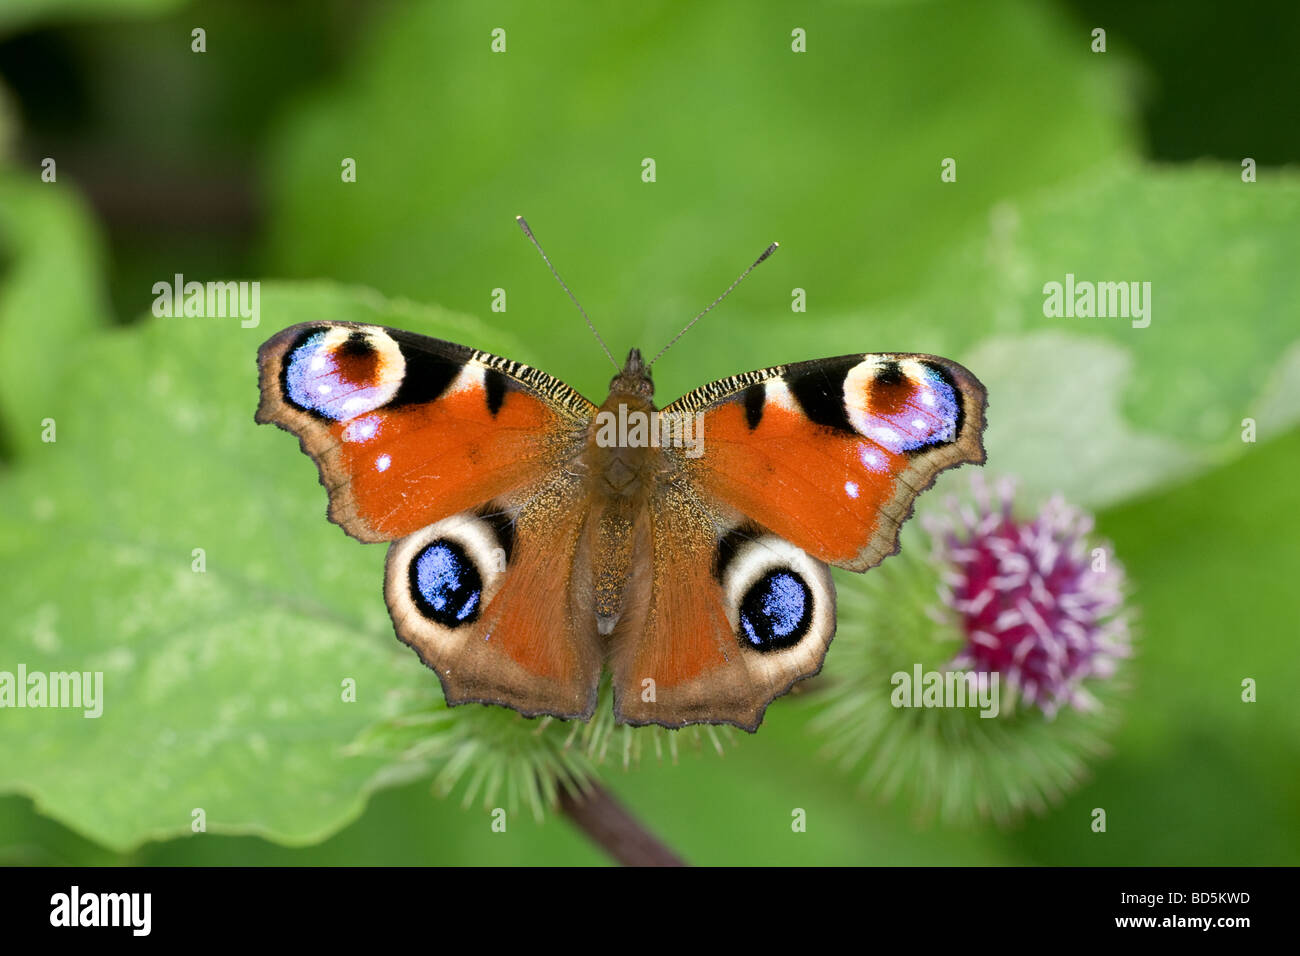 Peacock butterfly (Inachis io) settled with wings open on a burdock flower Stock Photo